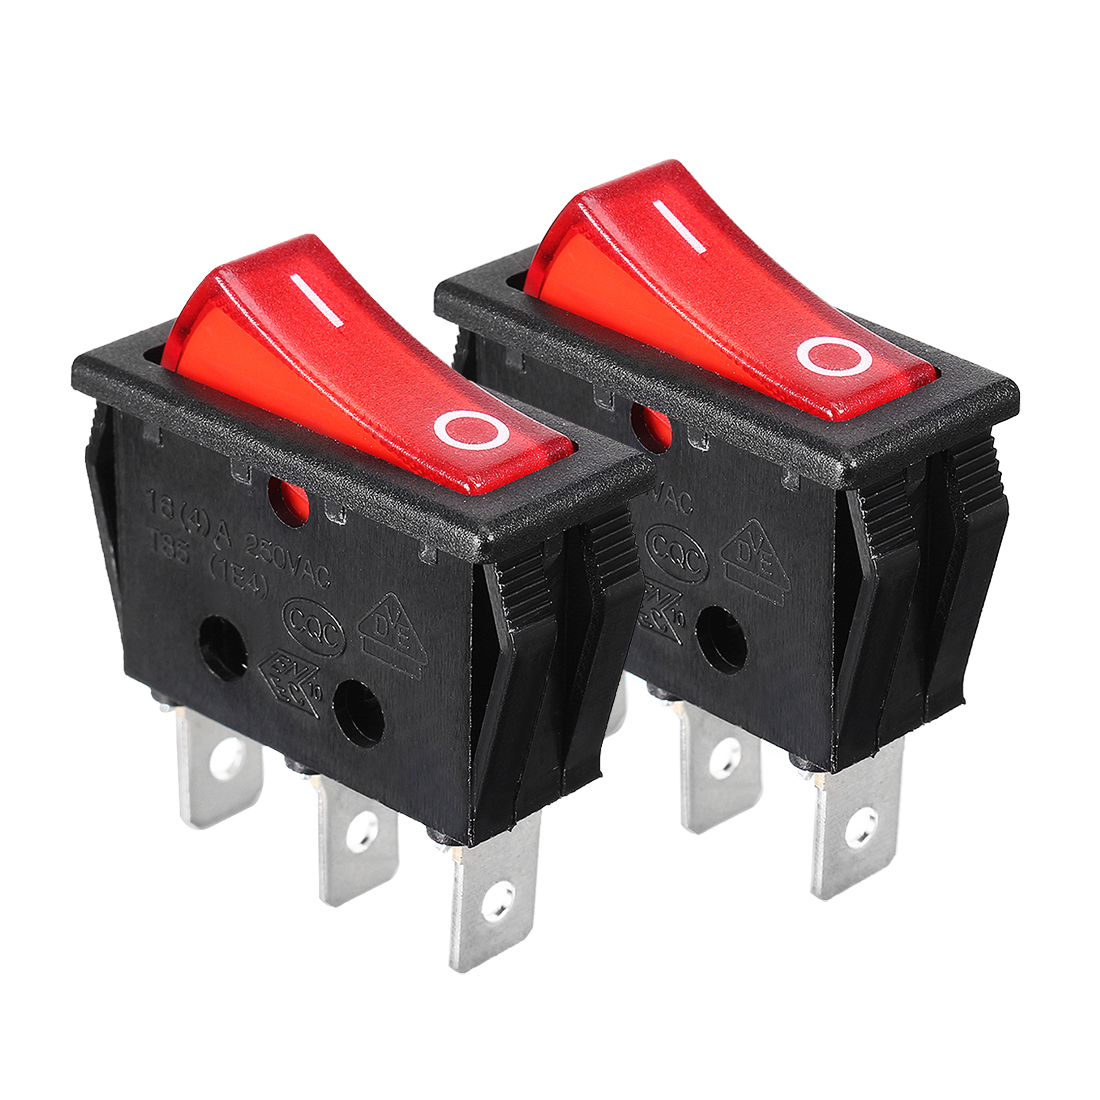 16(4)A/250VAC 3 Terminal Red Light ON-OFF I/O SPST Rocker Switch 2Pcs